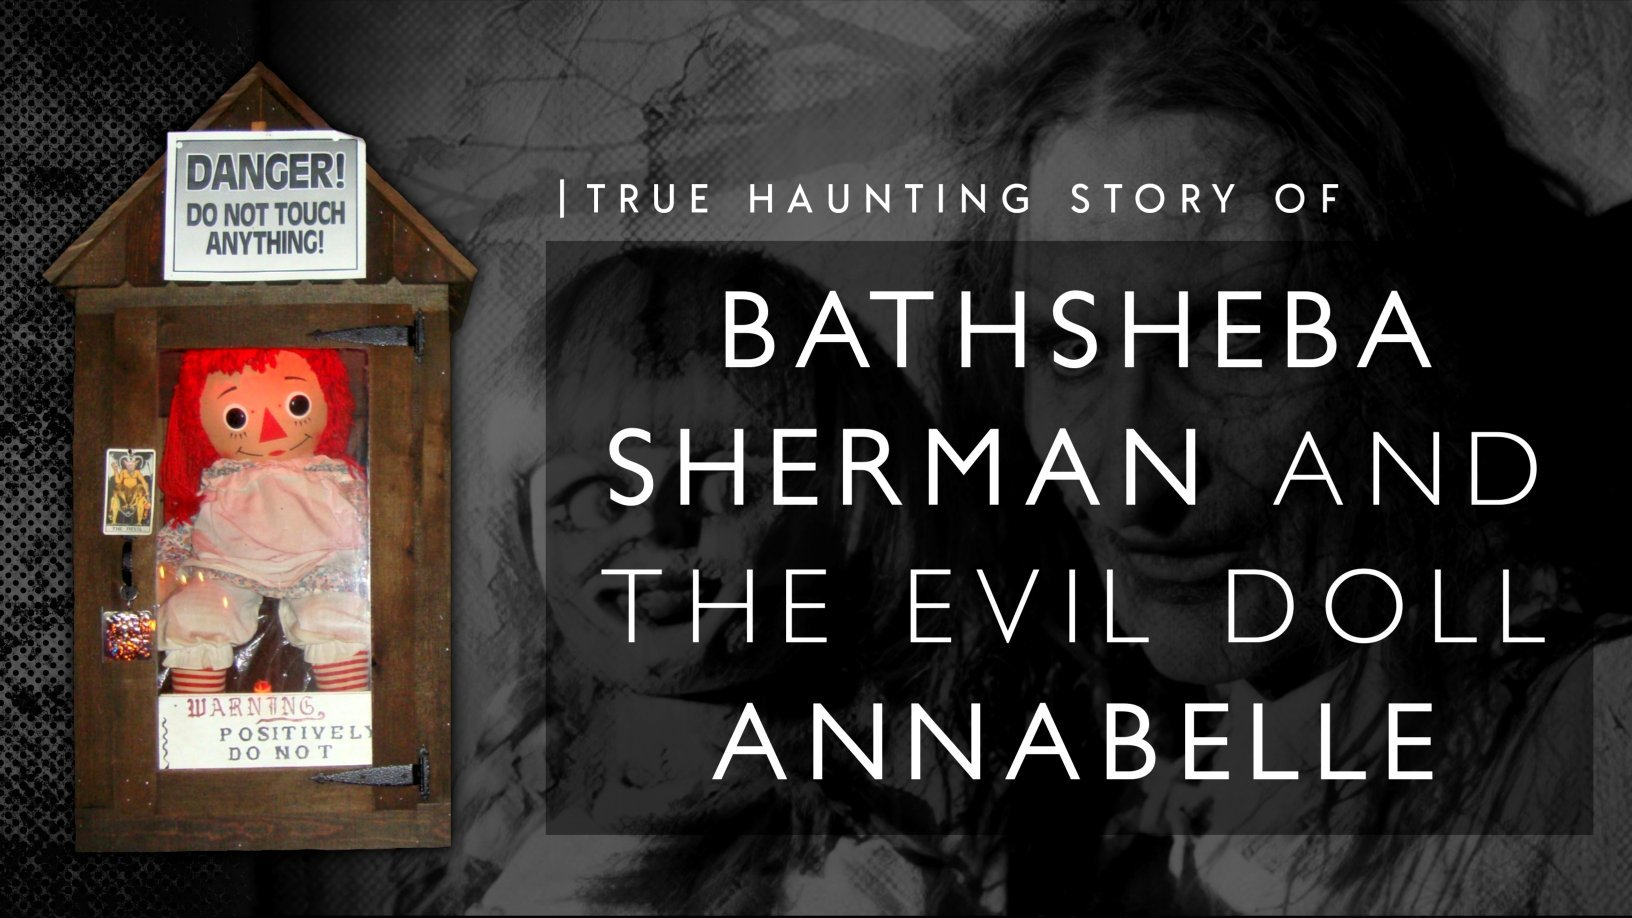 Bathsheba Sherman And The Evil Doll Annabelle: The True Story Behind 'The Conjuring'